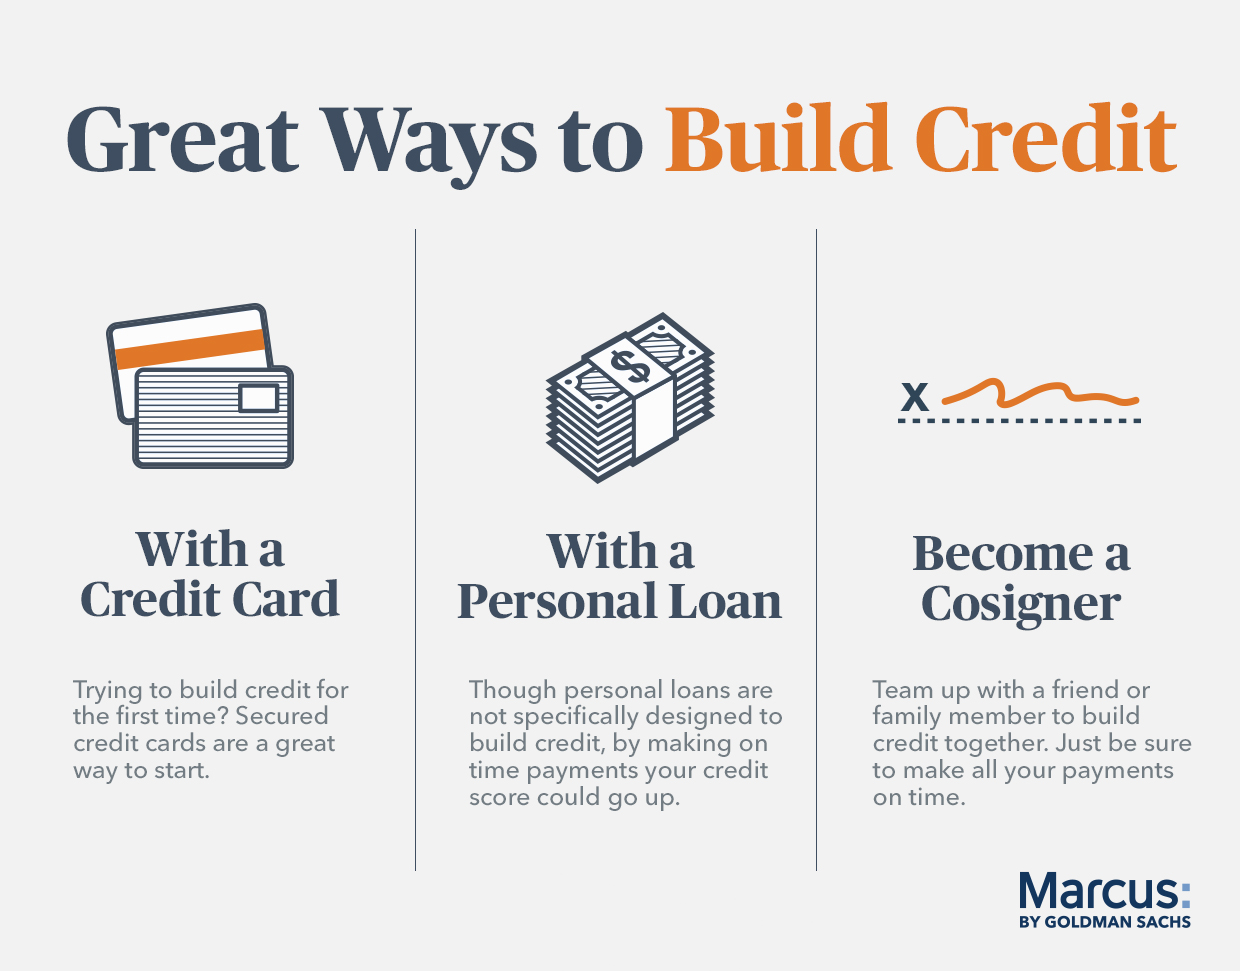 GreatWaysToBuildCredit.jpg